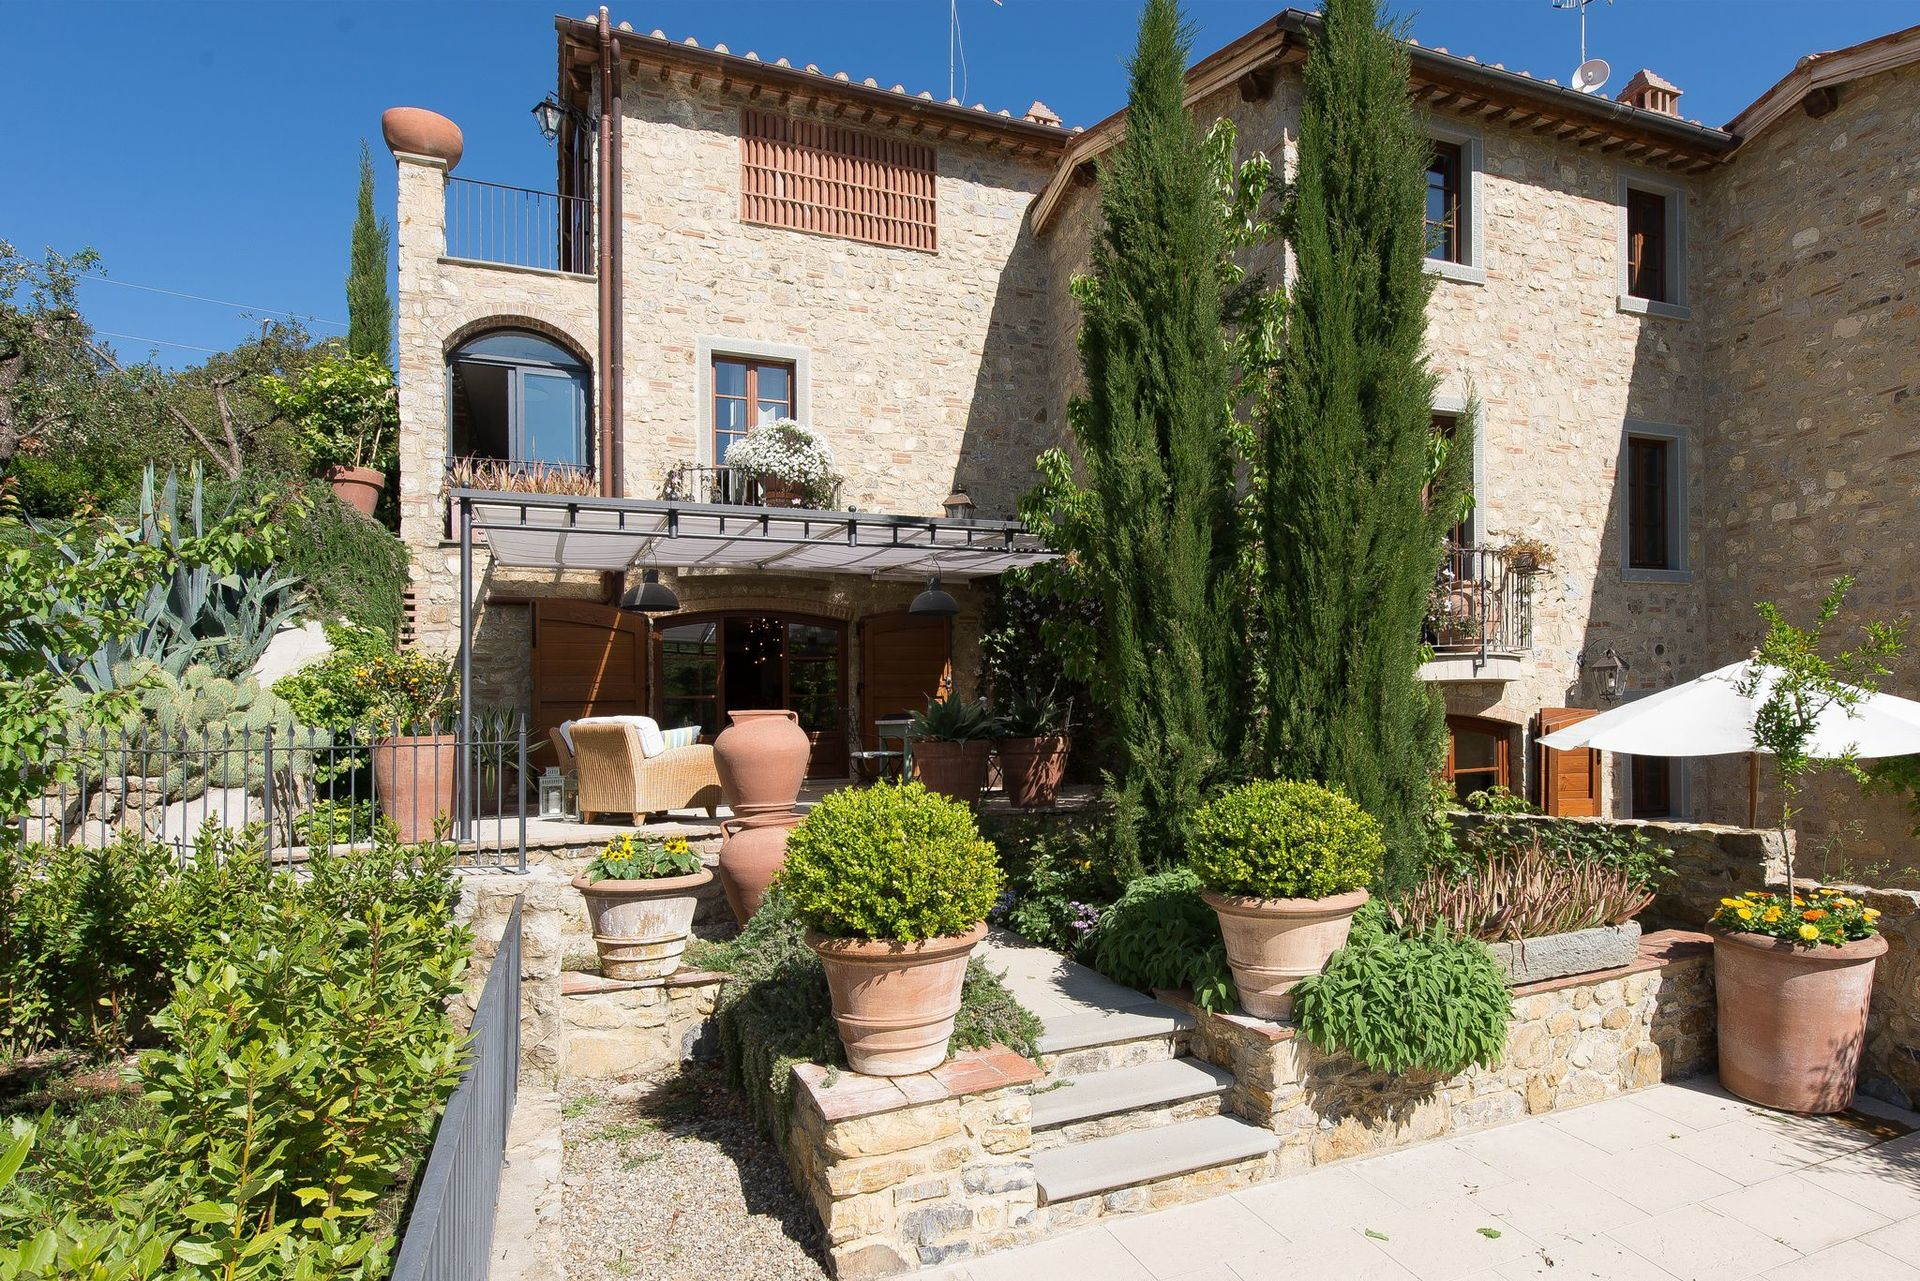 Villa a Sesta Holiday Rental Villa Nova located Tuscany, Italy